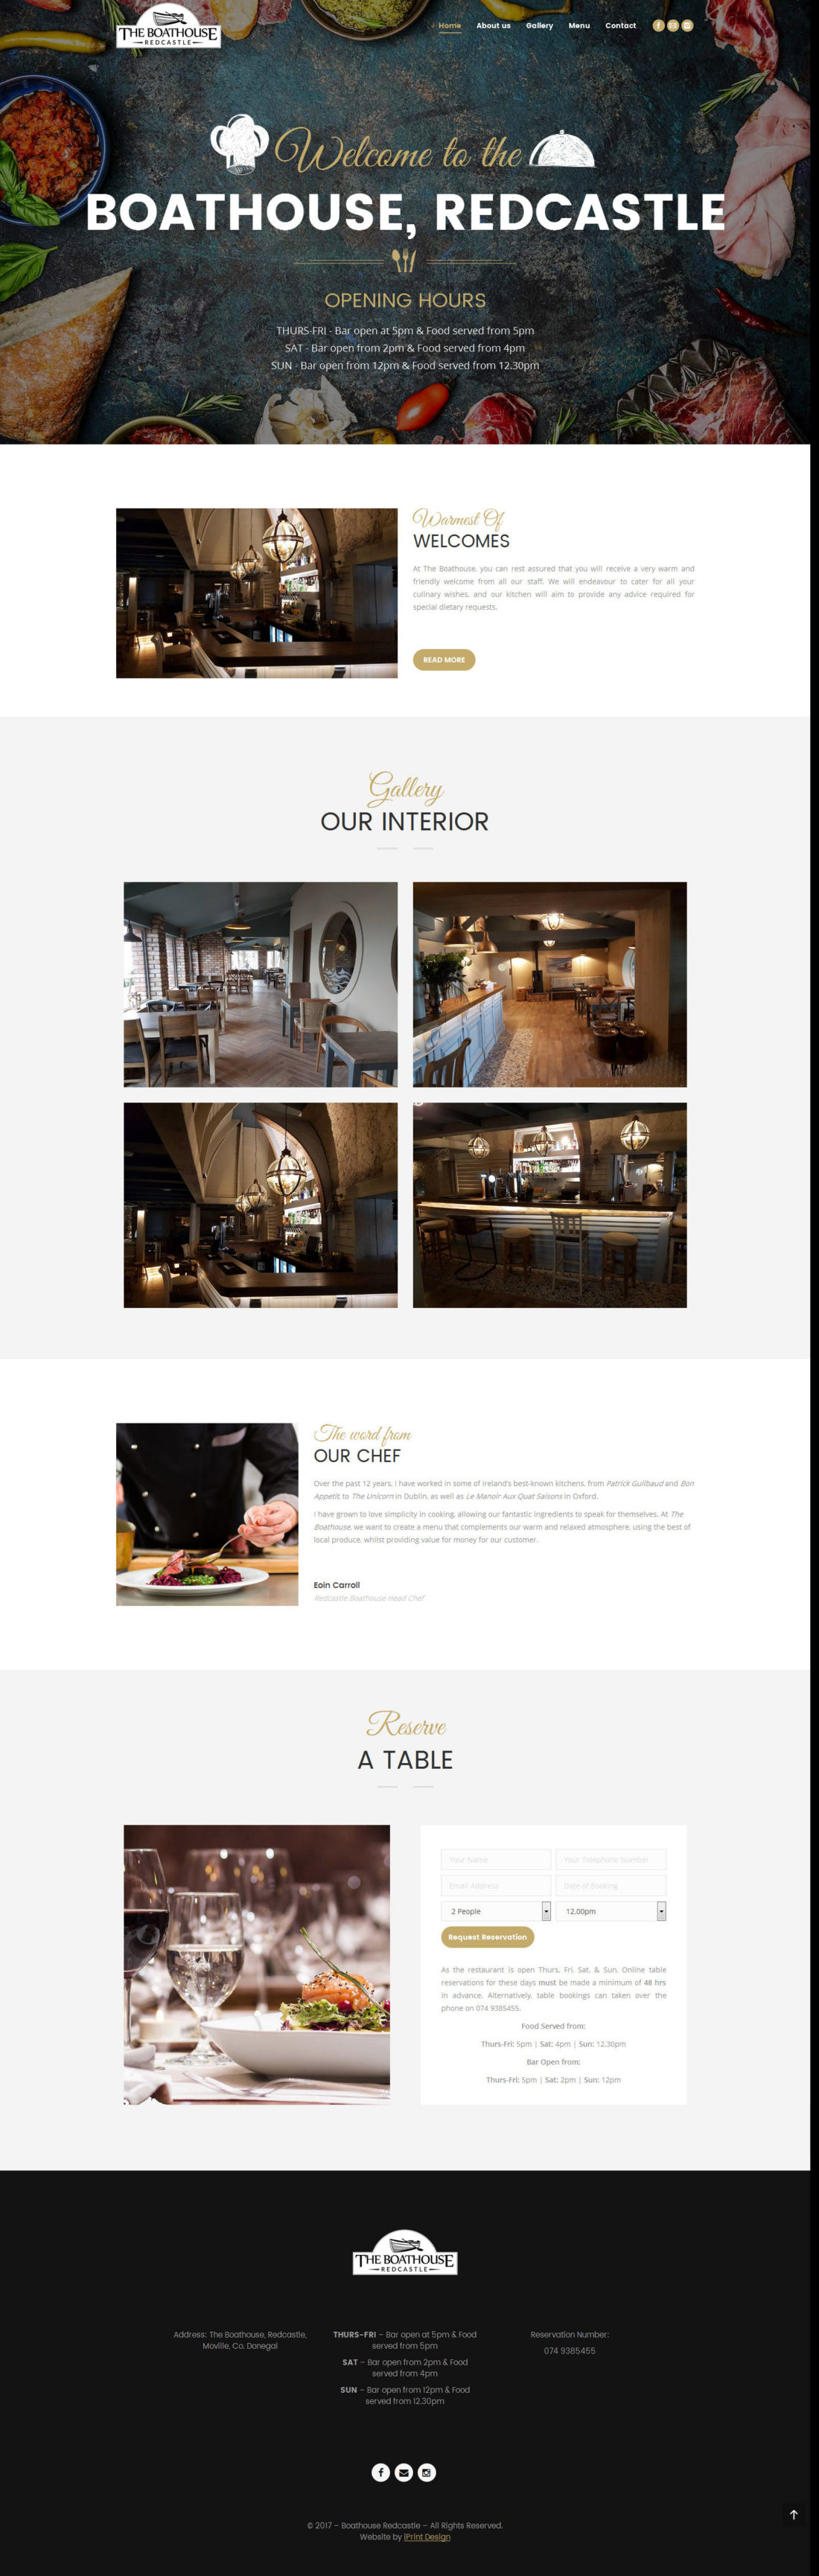 Boathouse Website Sample Page